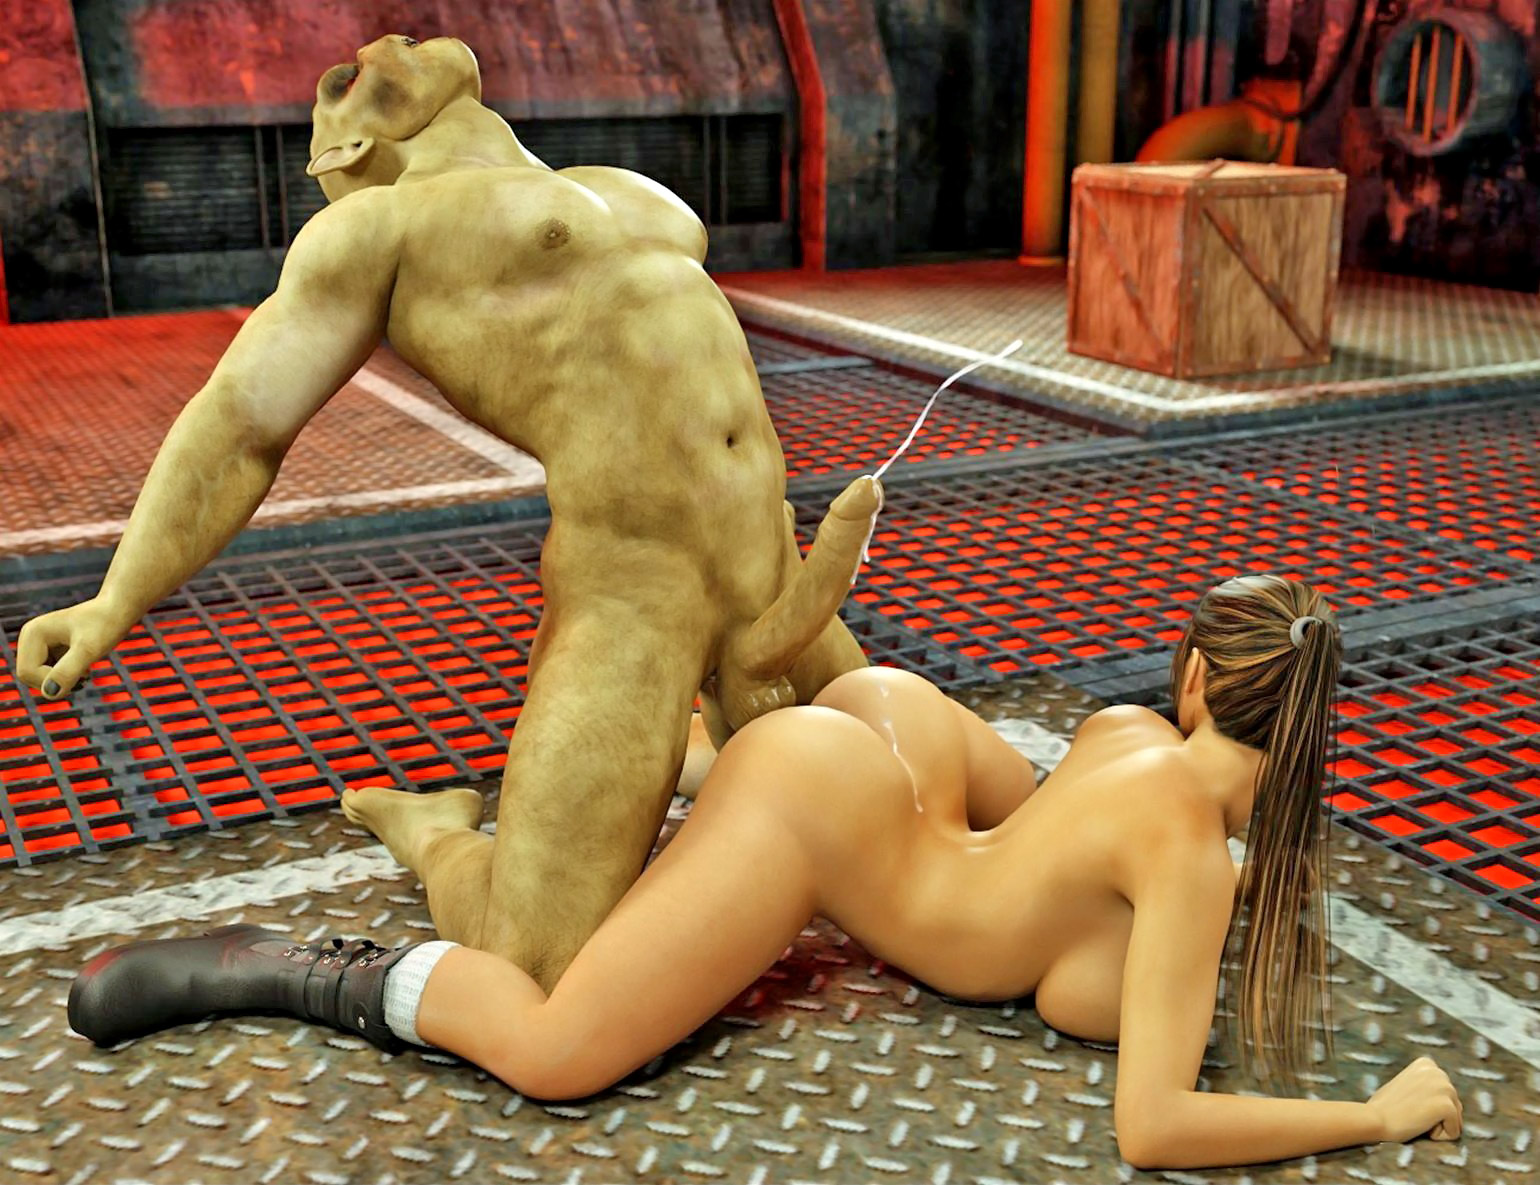 Laracroft erotic pic sex tube